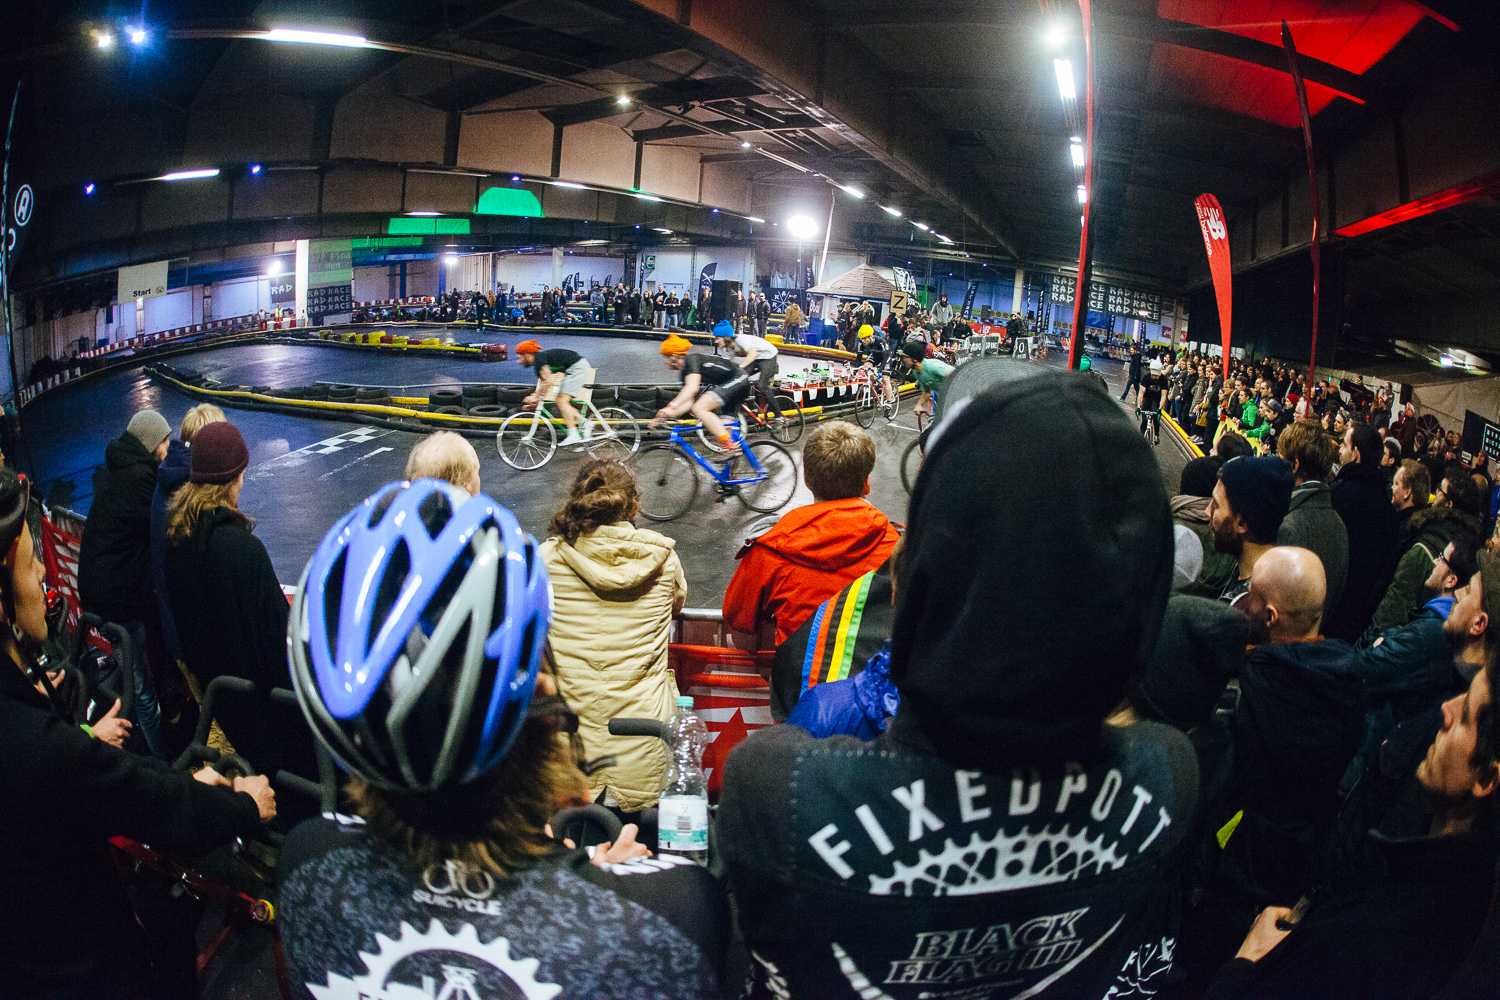 RAD RACE Last Man Standing Berlin 21.03.15 Photo by Burkhard Müller